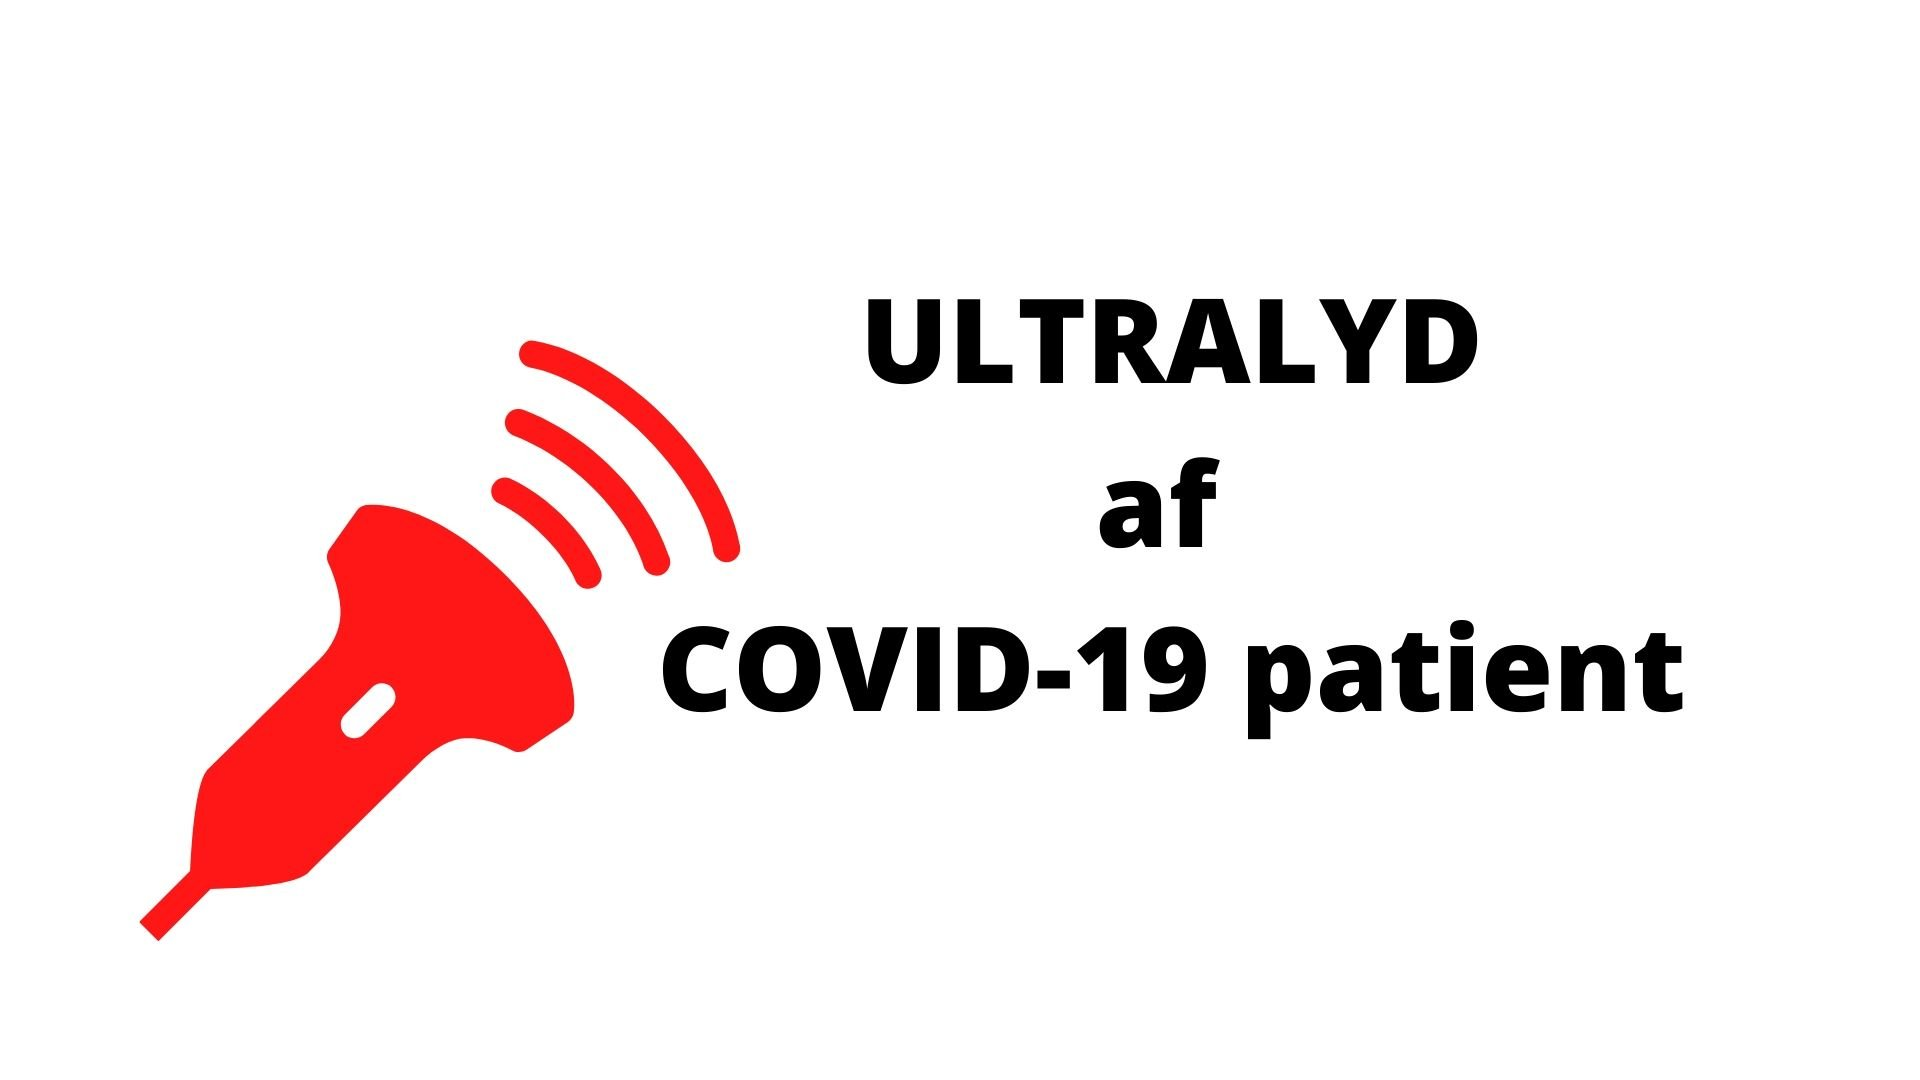 Ultralyd af COVID-19 patient